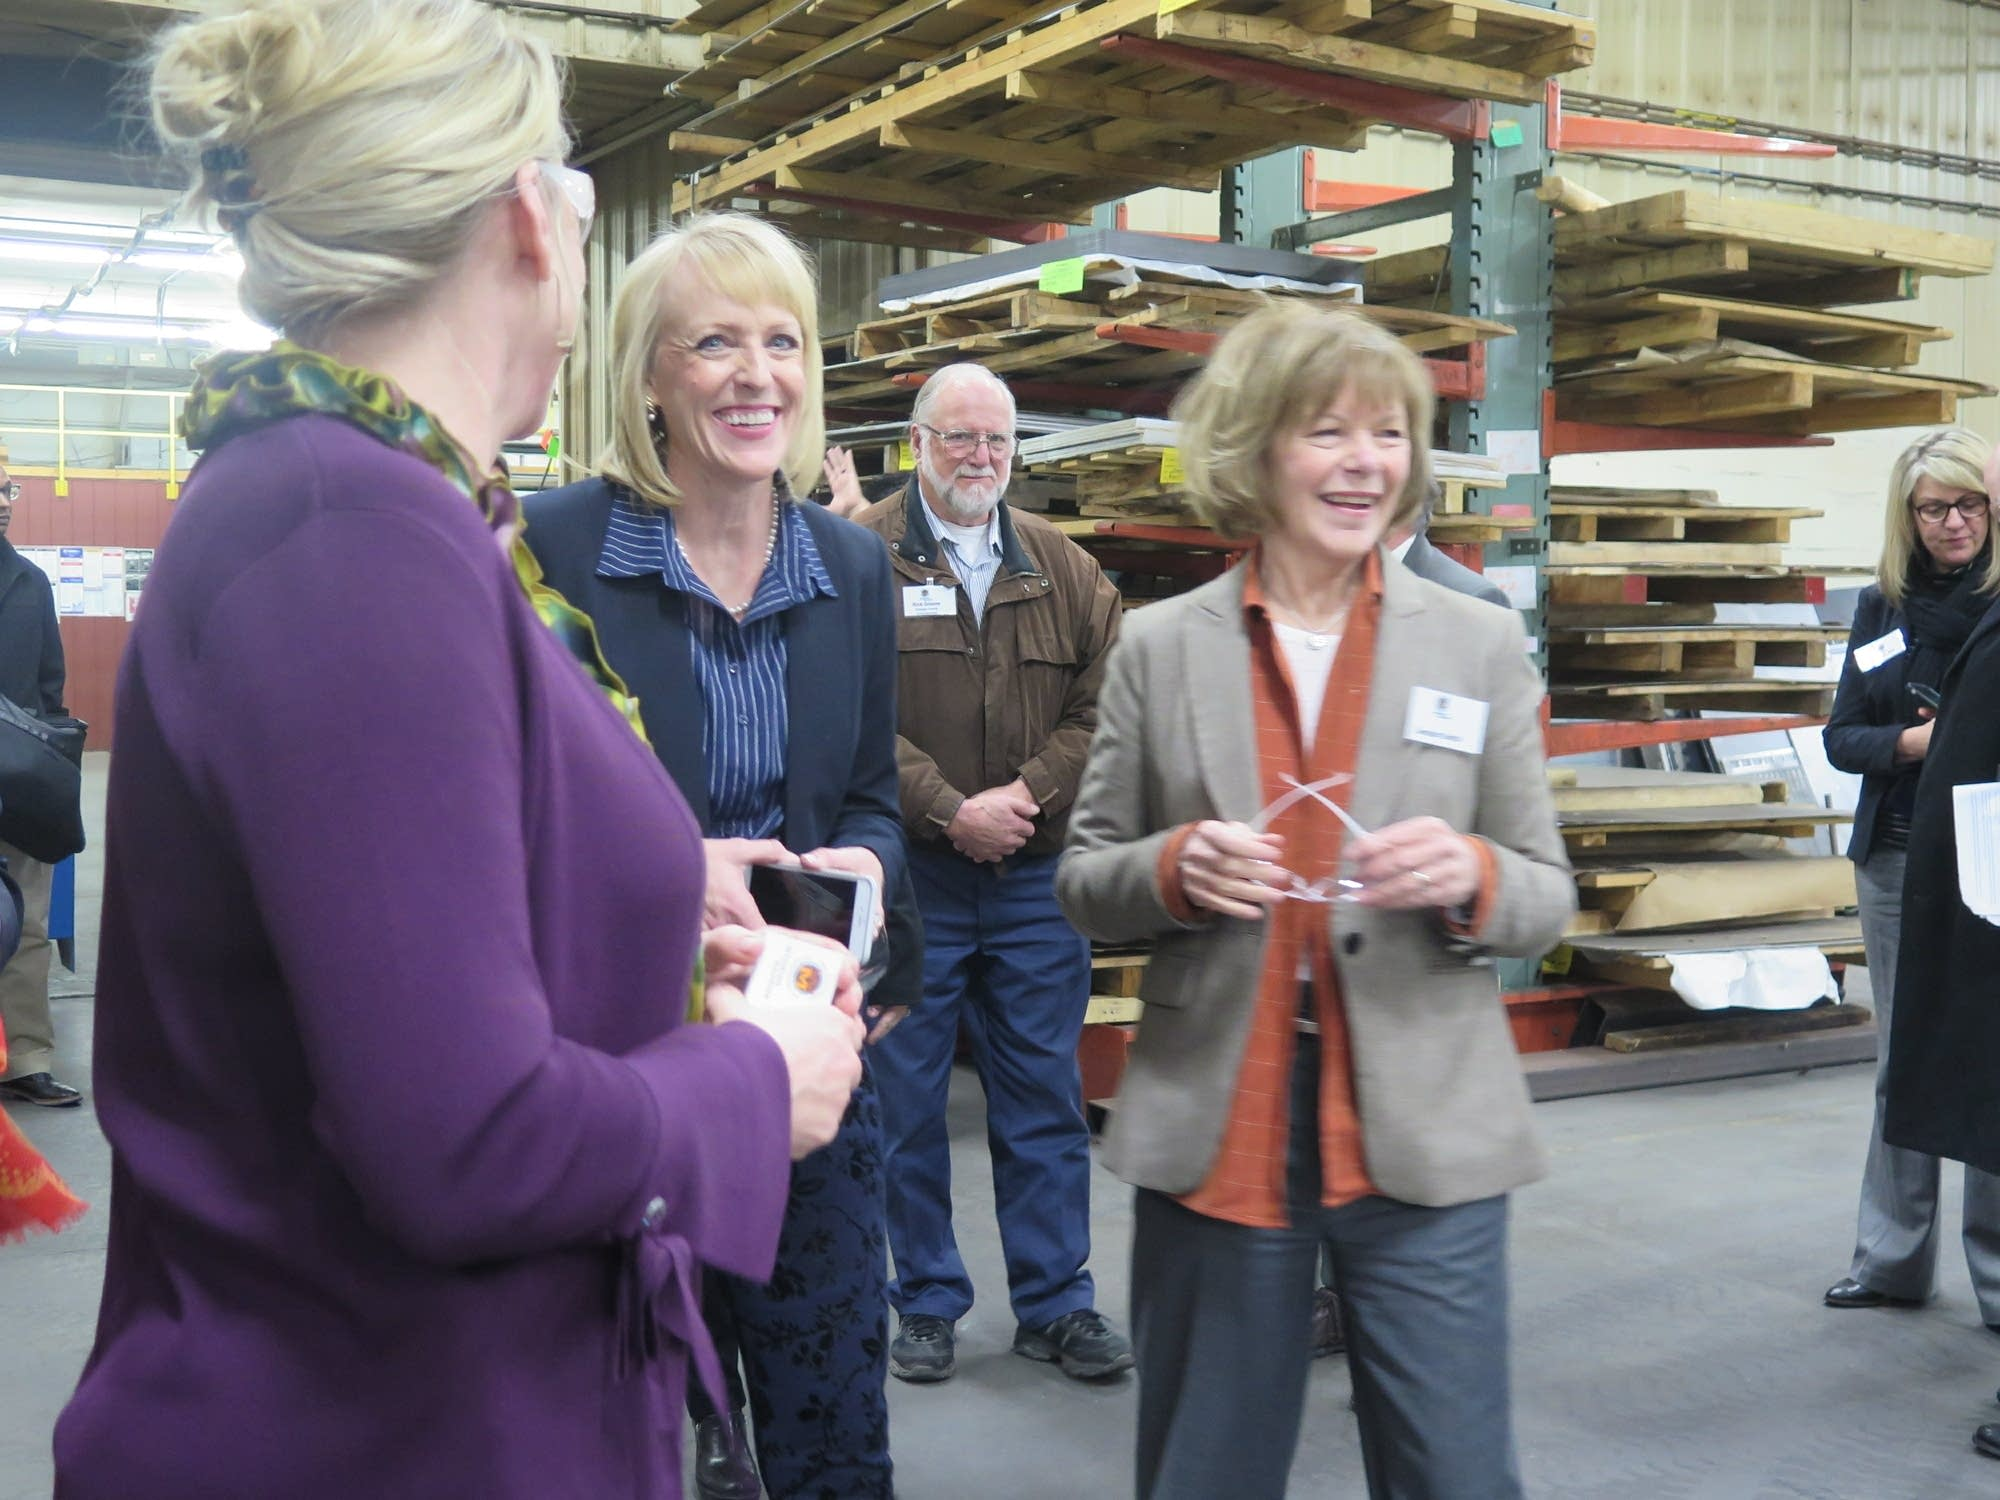 Traci Tapani leads U.S. Sen. Tina Smith on a tour in 2018.